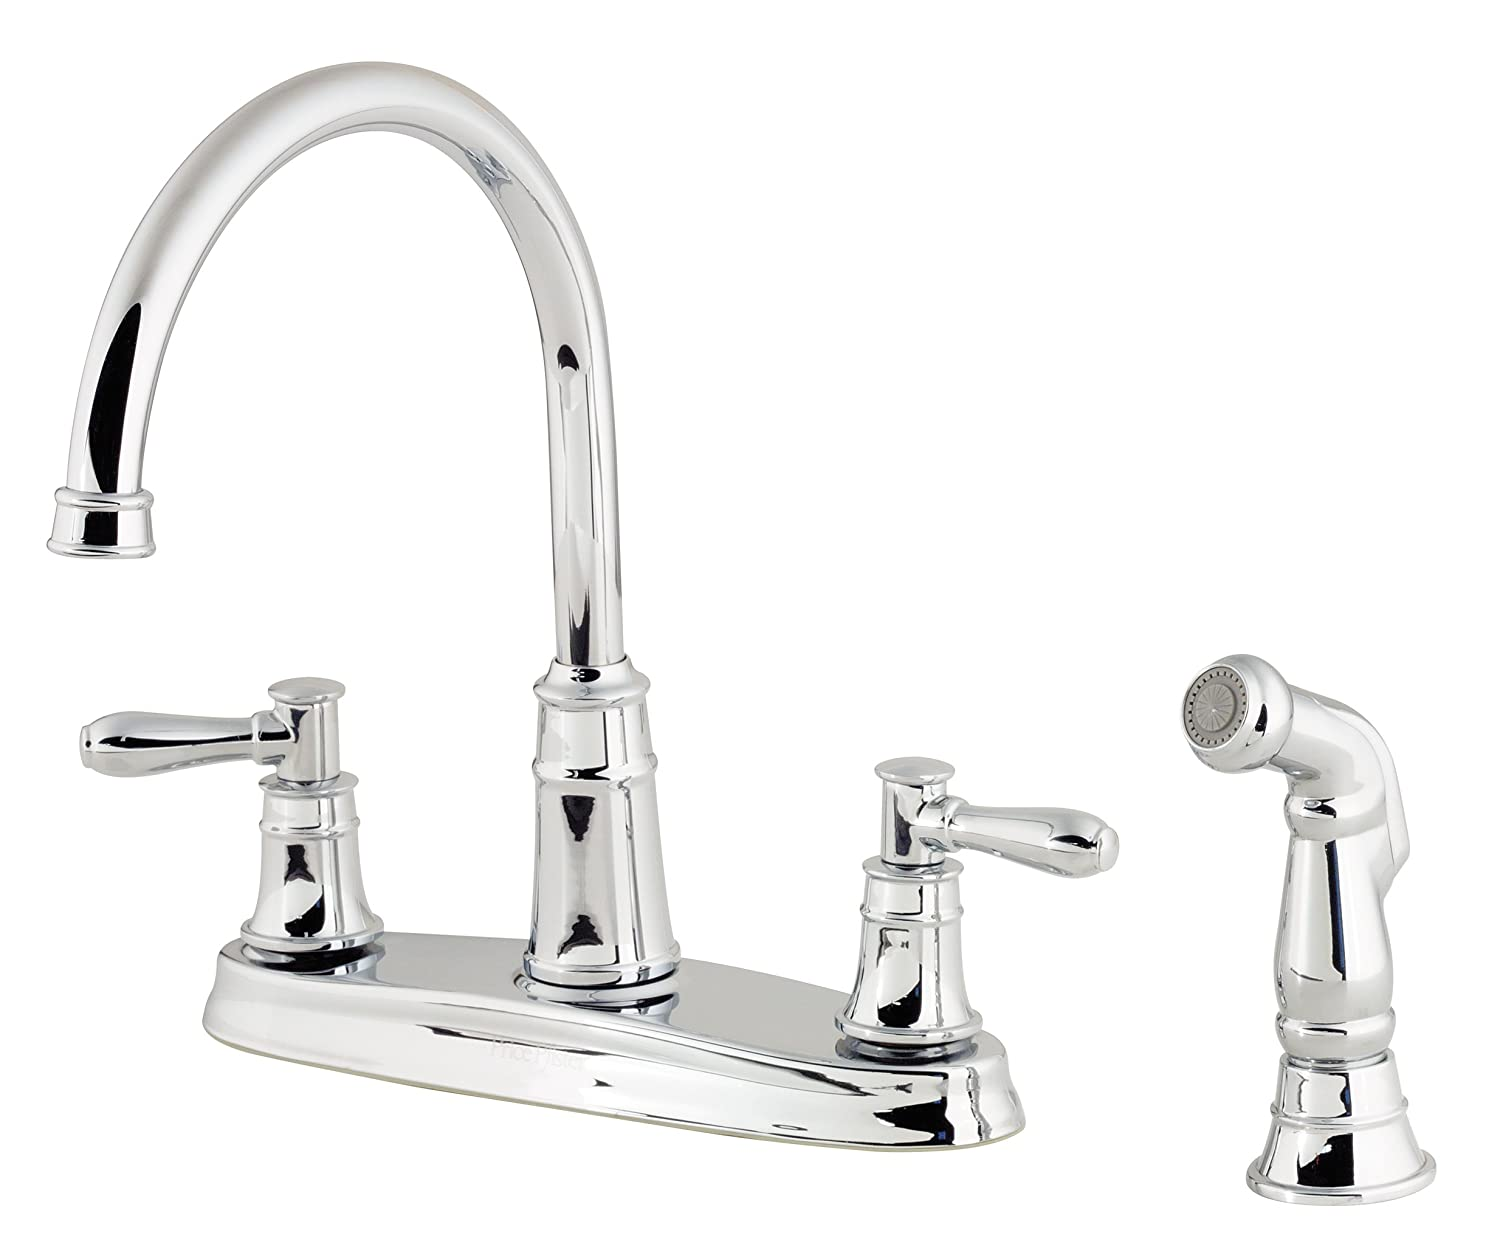 pfister harbor 2 handle kitchen faucet with side spray polished pfister harbor 2 handle kitchen faucet with side spray polished chrome touch on kitchen sink faucets amazon com